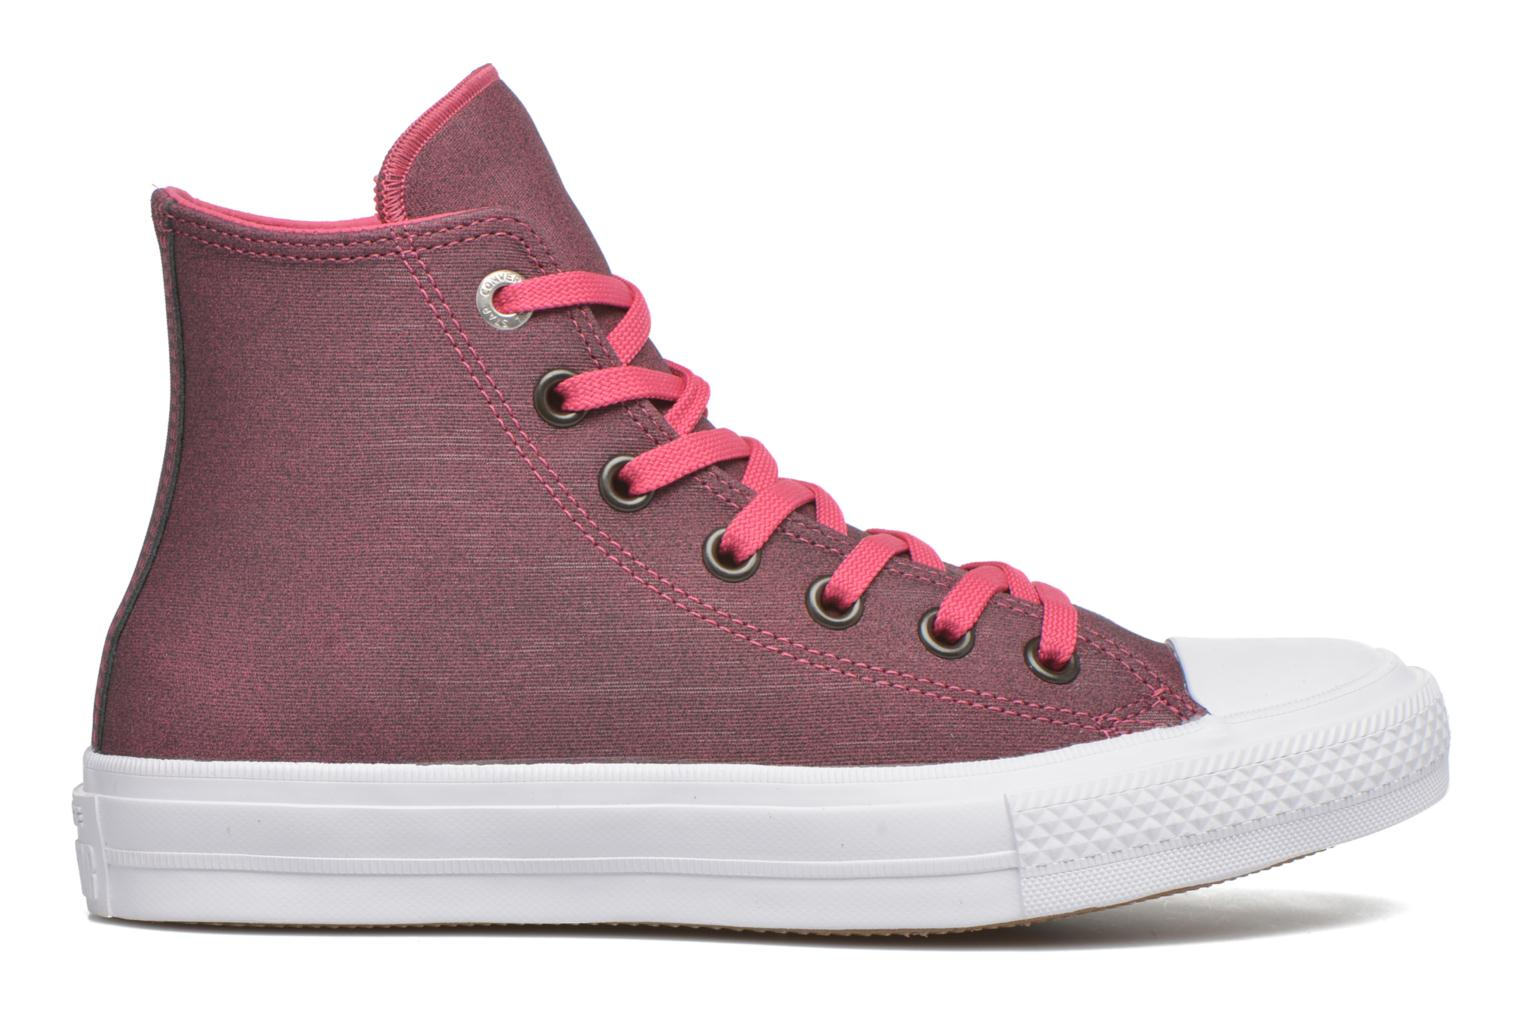 Chuck Taylor All Star II Hi W Vivid Pink/Black/White